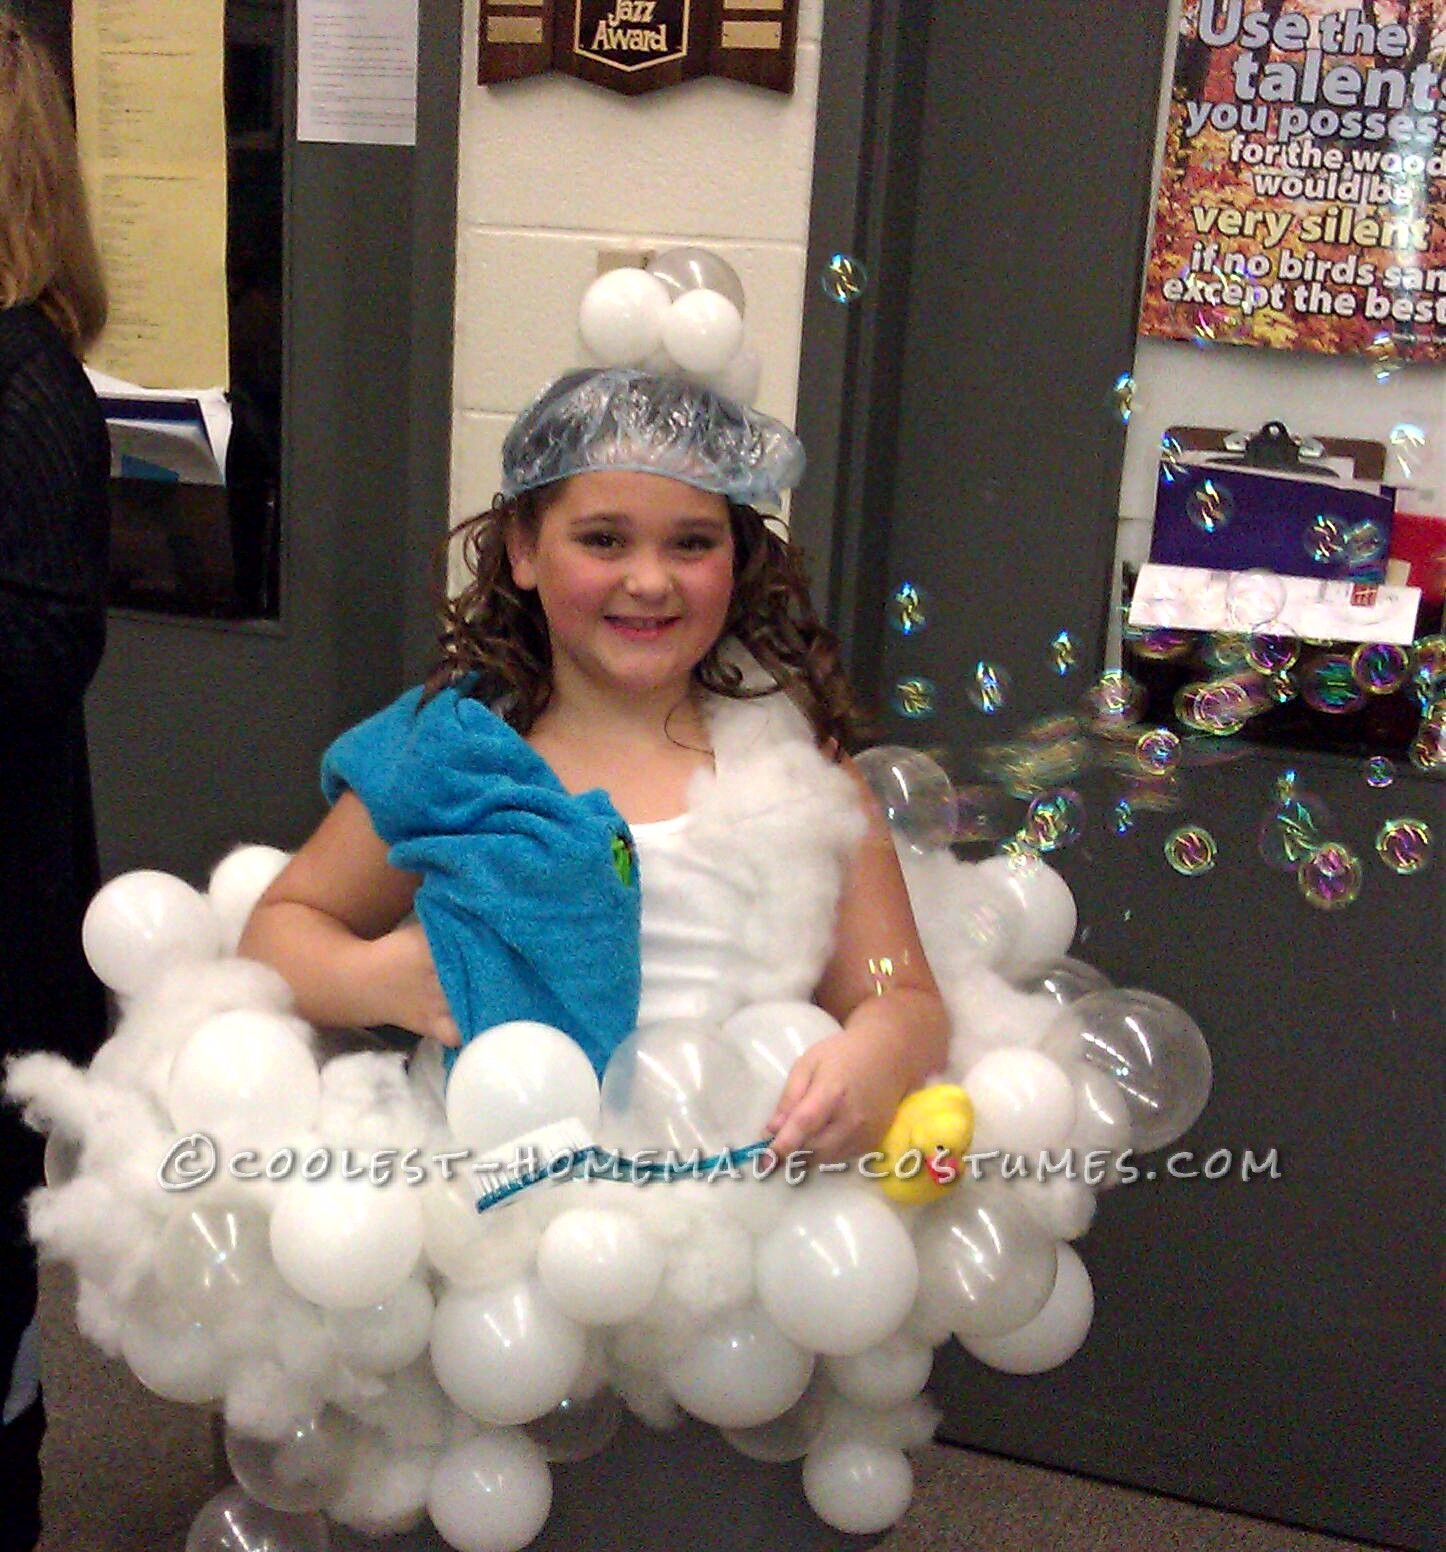 Coolest homemade realistic bubble bath costume idea for Unique childrens halloween costume ideas